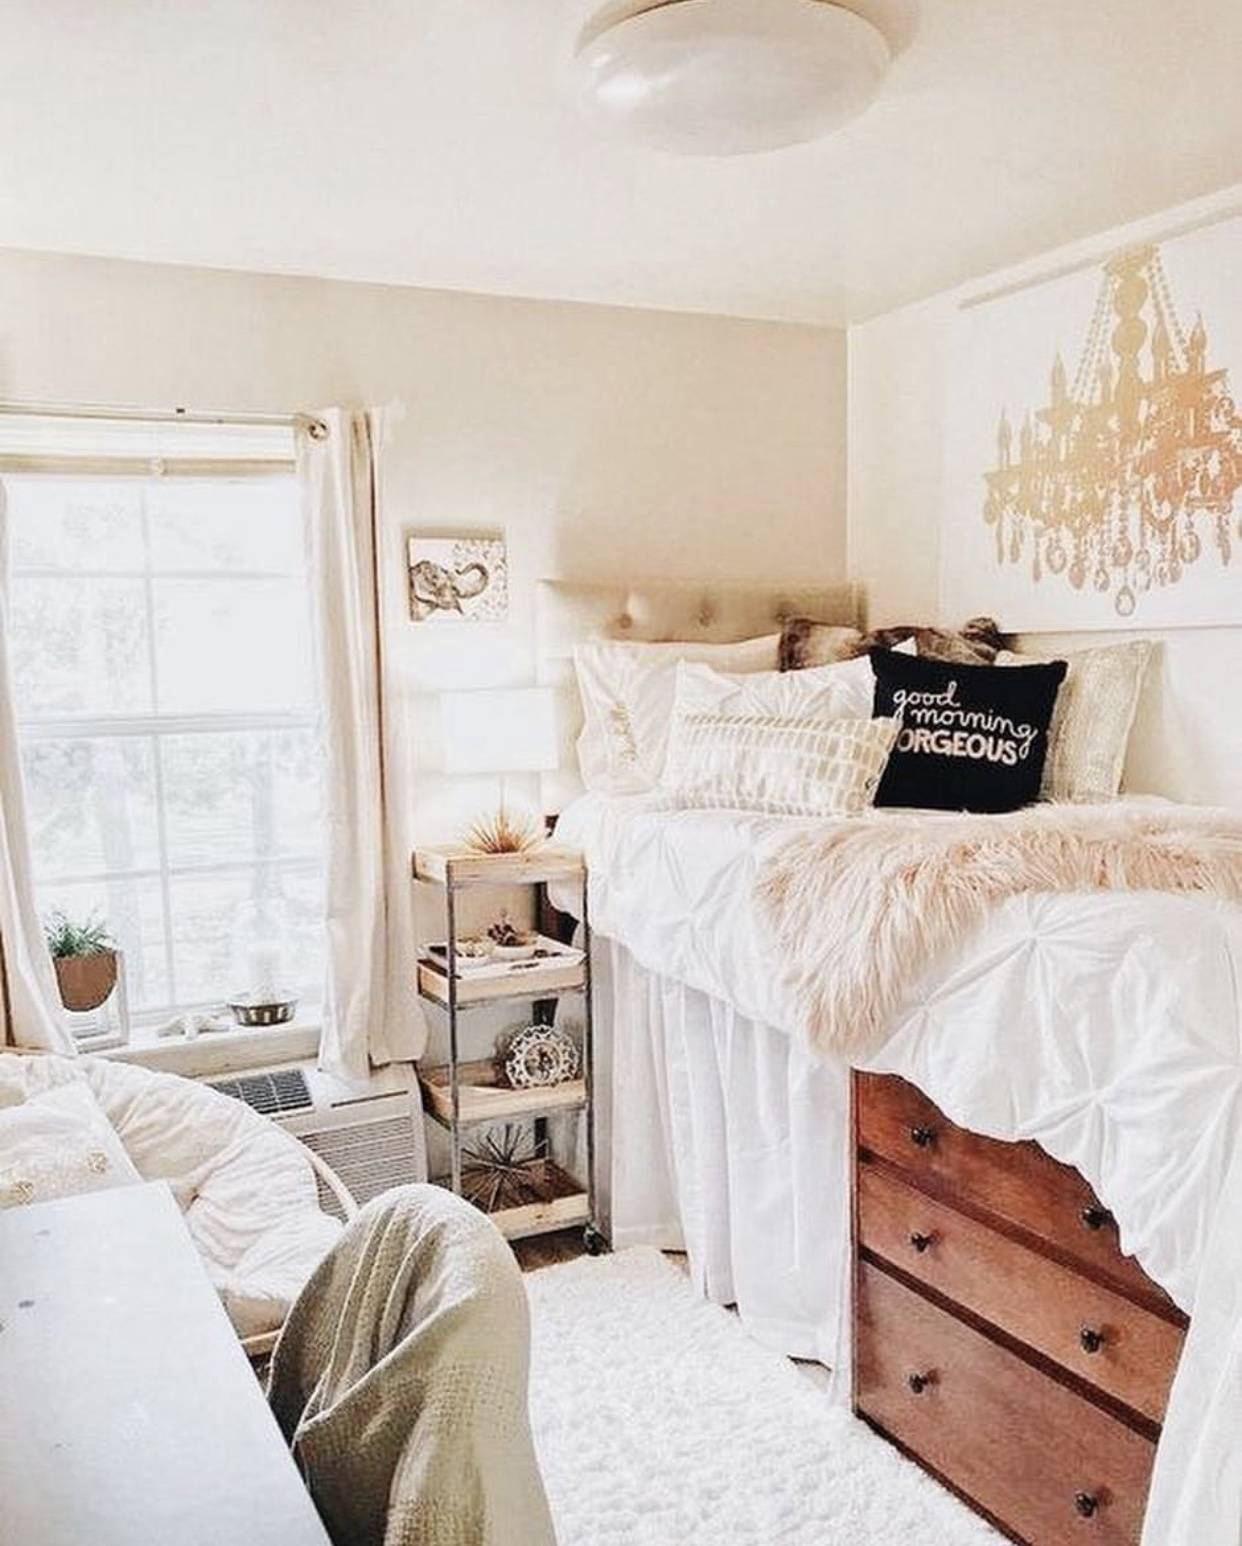 Vsco Decor Ideas - Must Have Decor for a Vsco Room - The